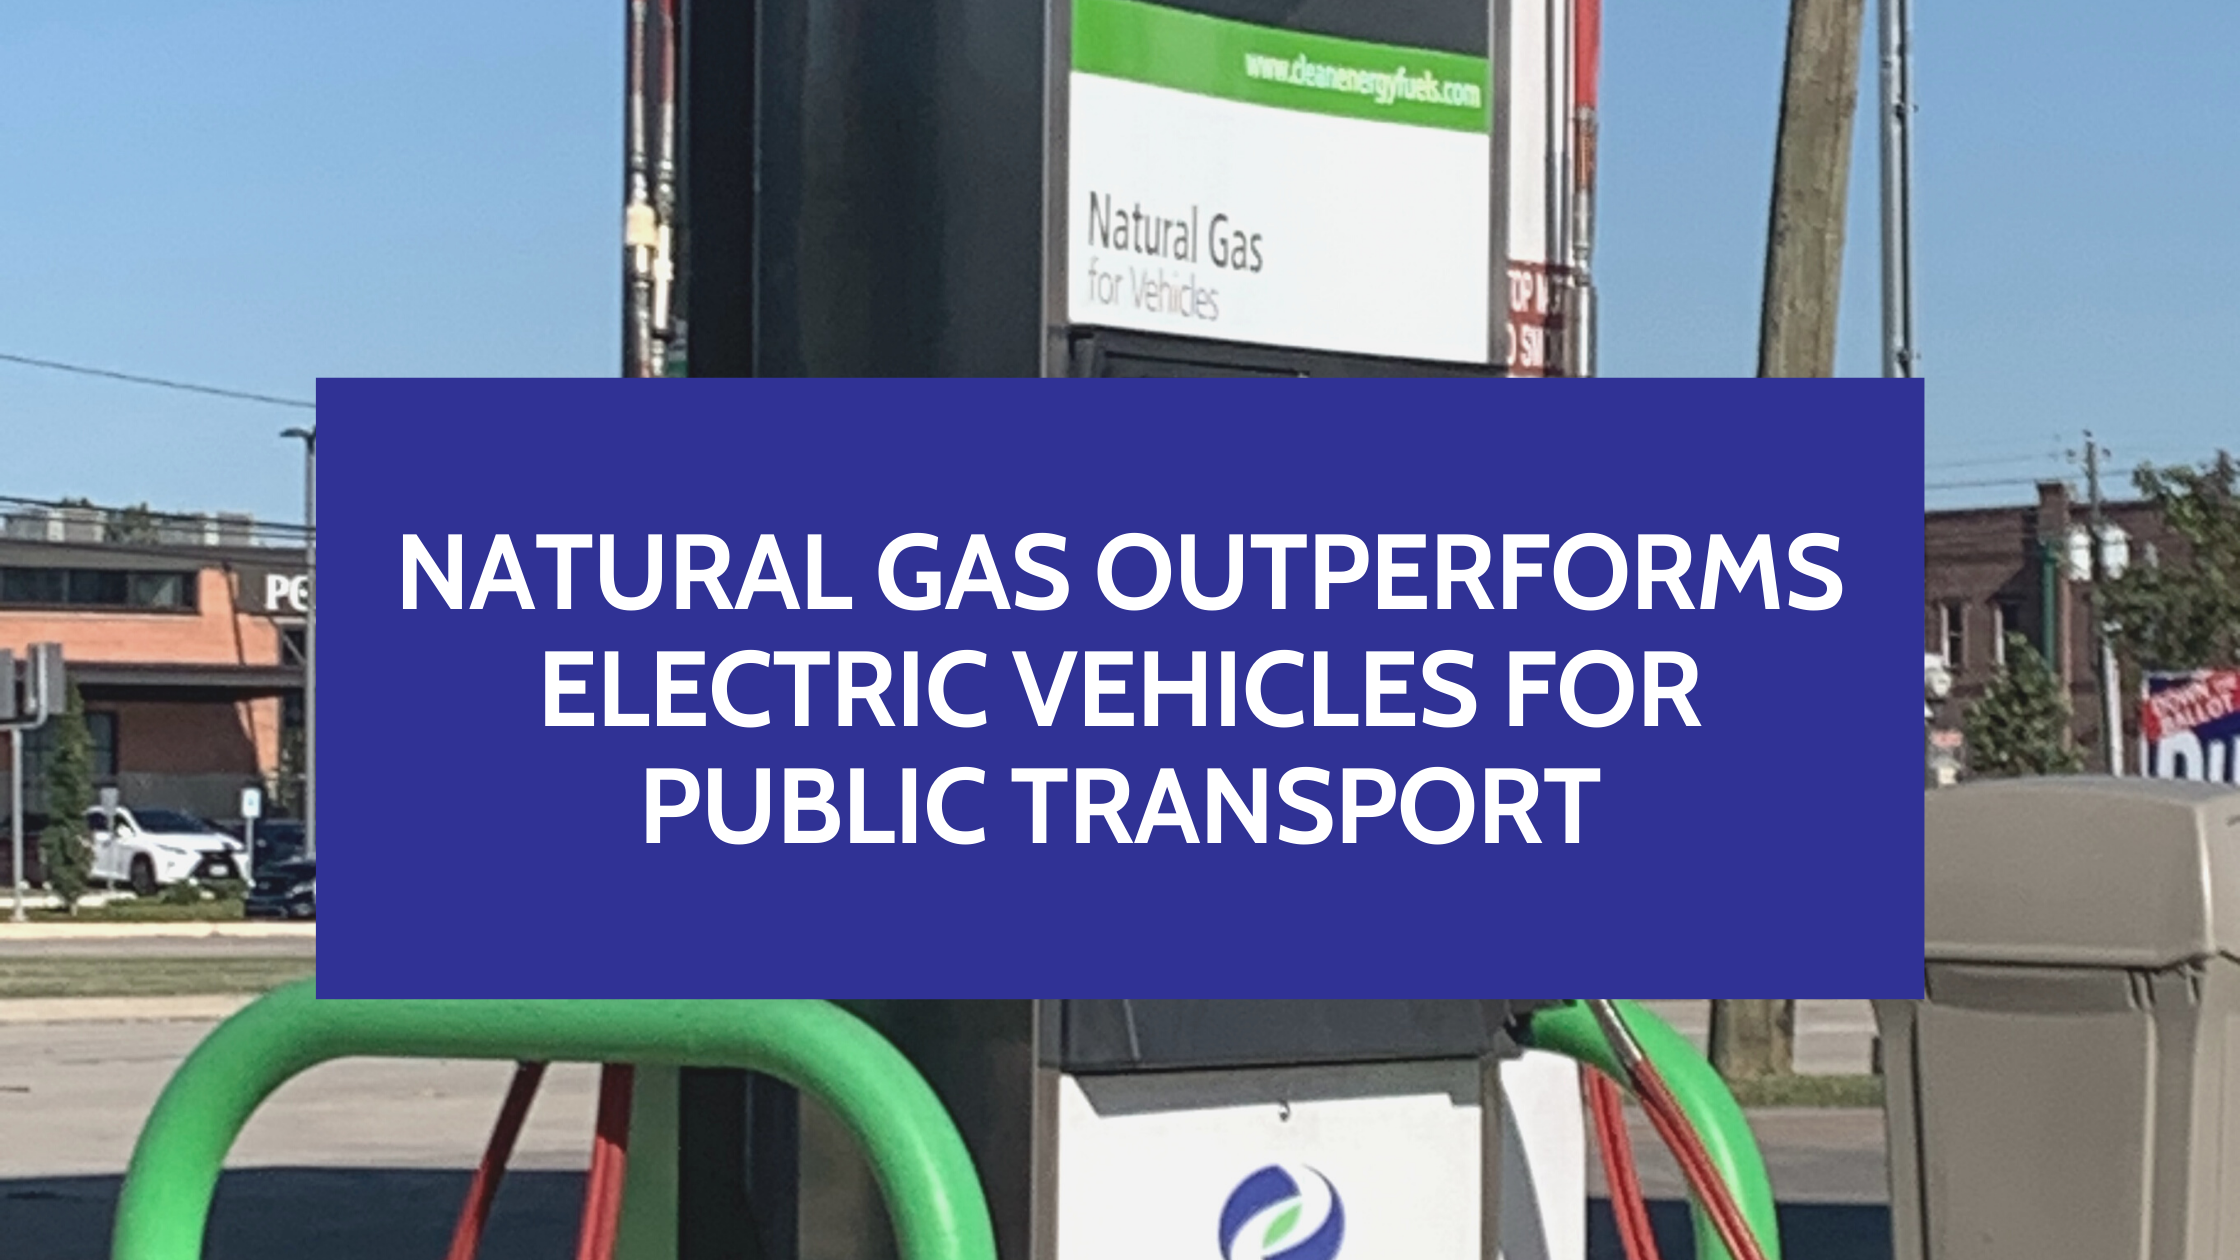 Natural Gas Outperforms Electric Vehicles for Public Transport